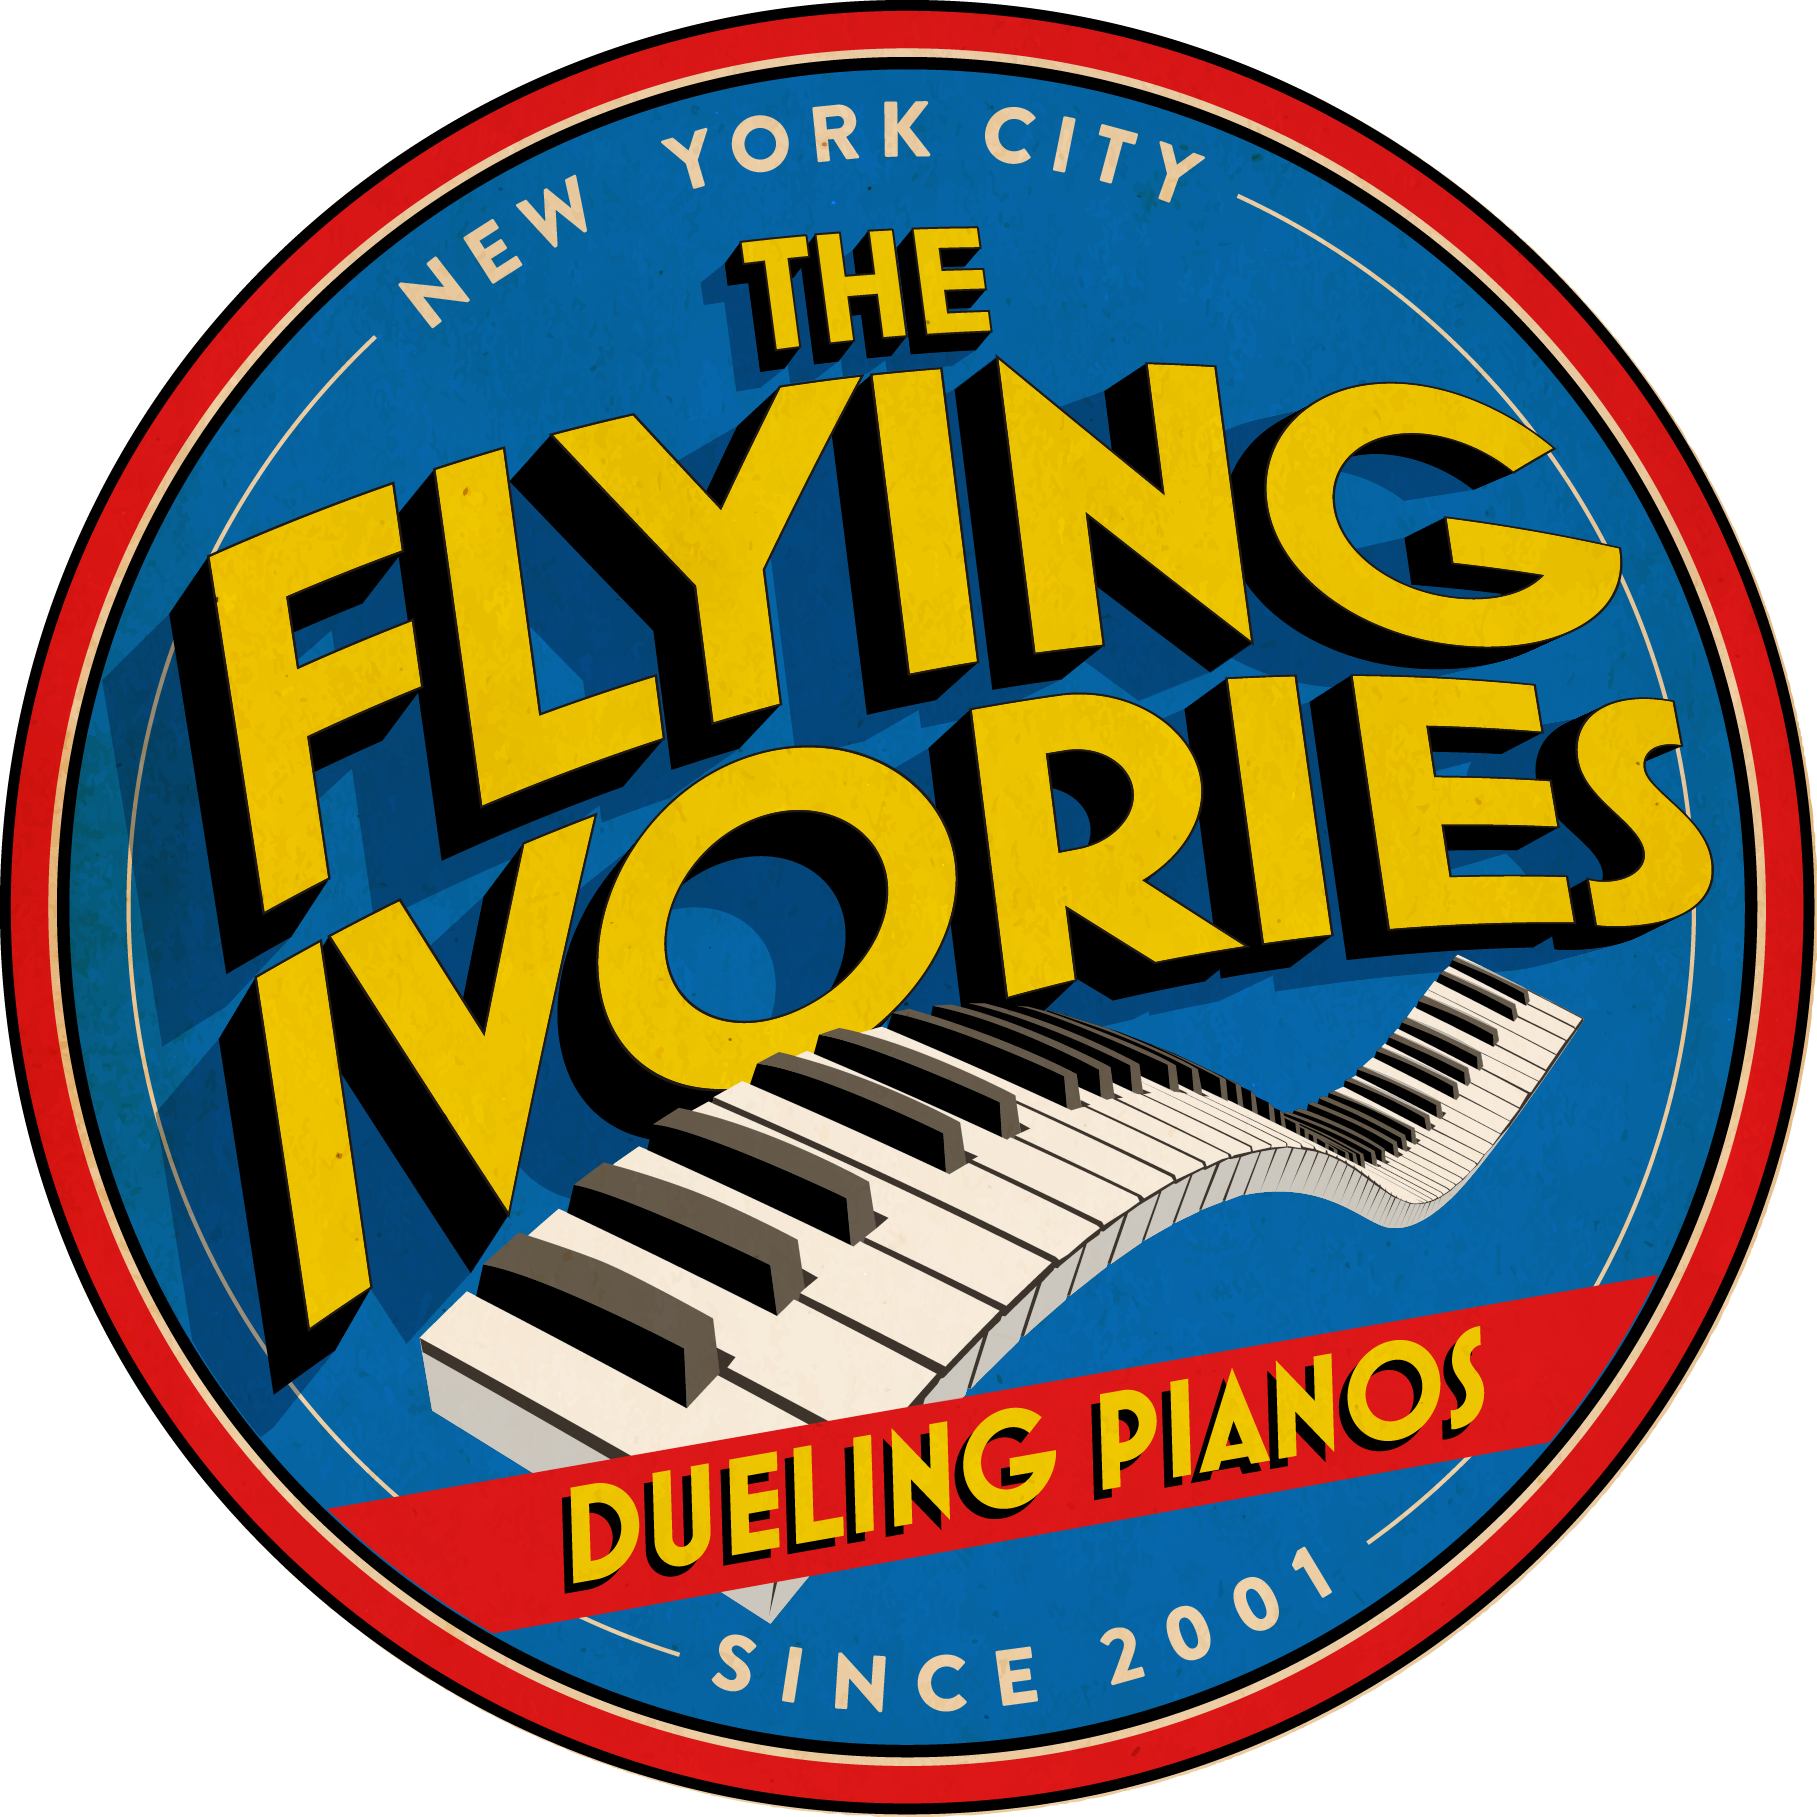 Seeking comic book cover style for THE FLYING IVORIES: DUELING PIANO SHOW.